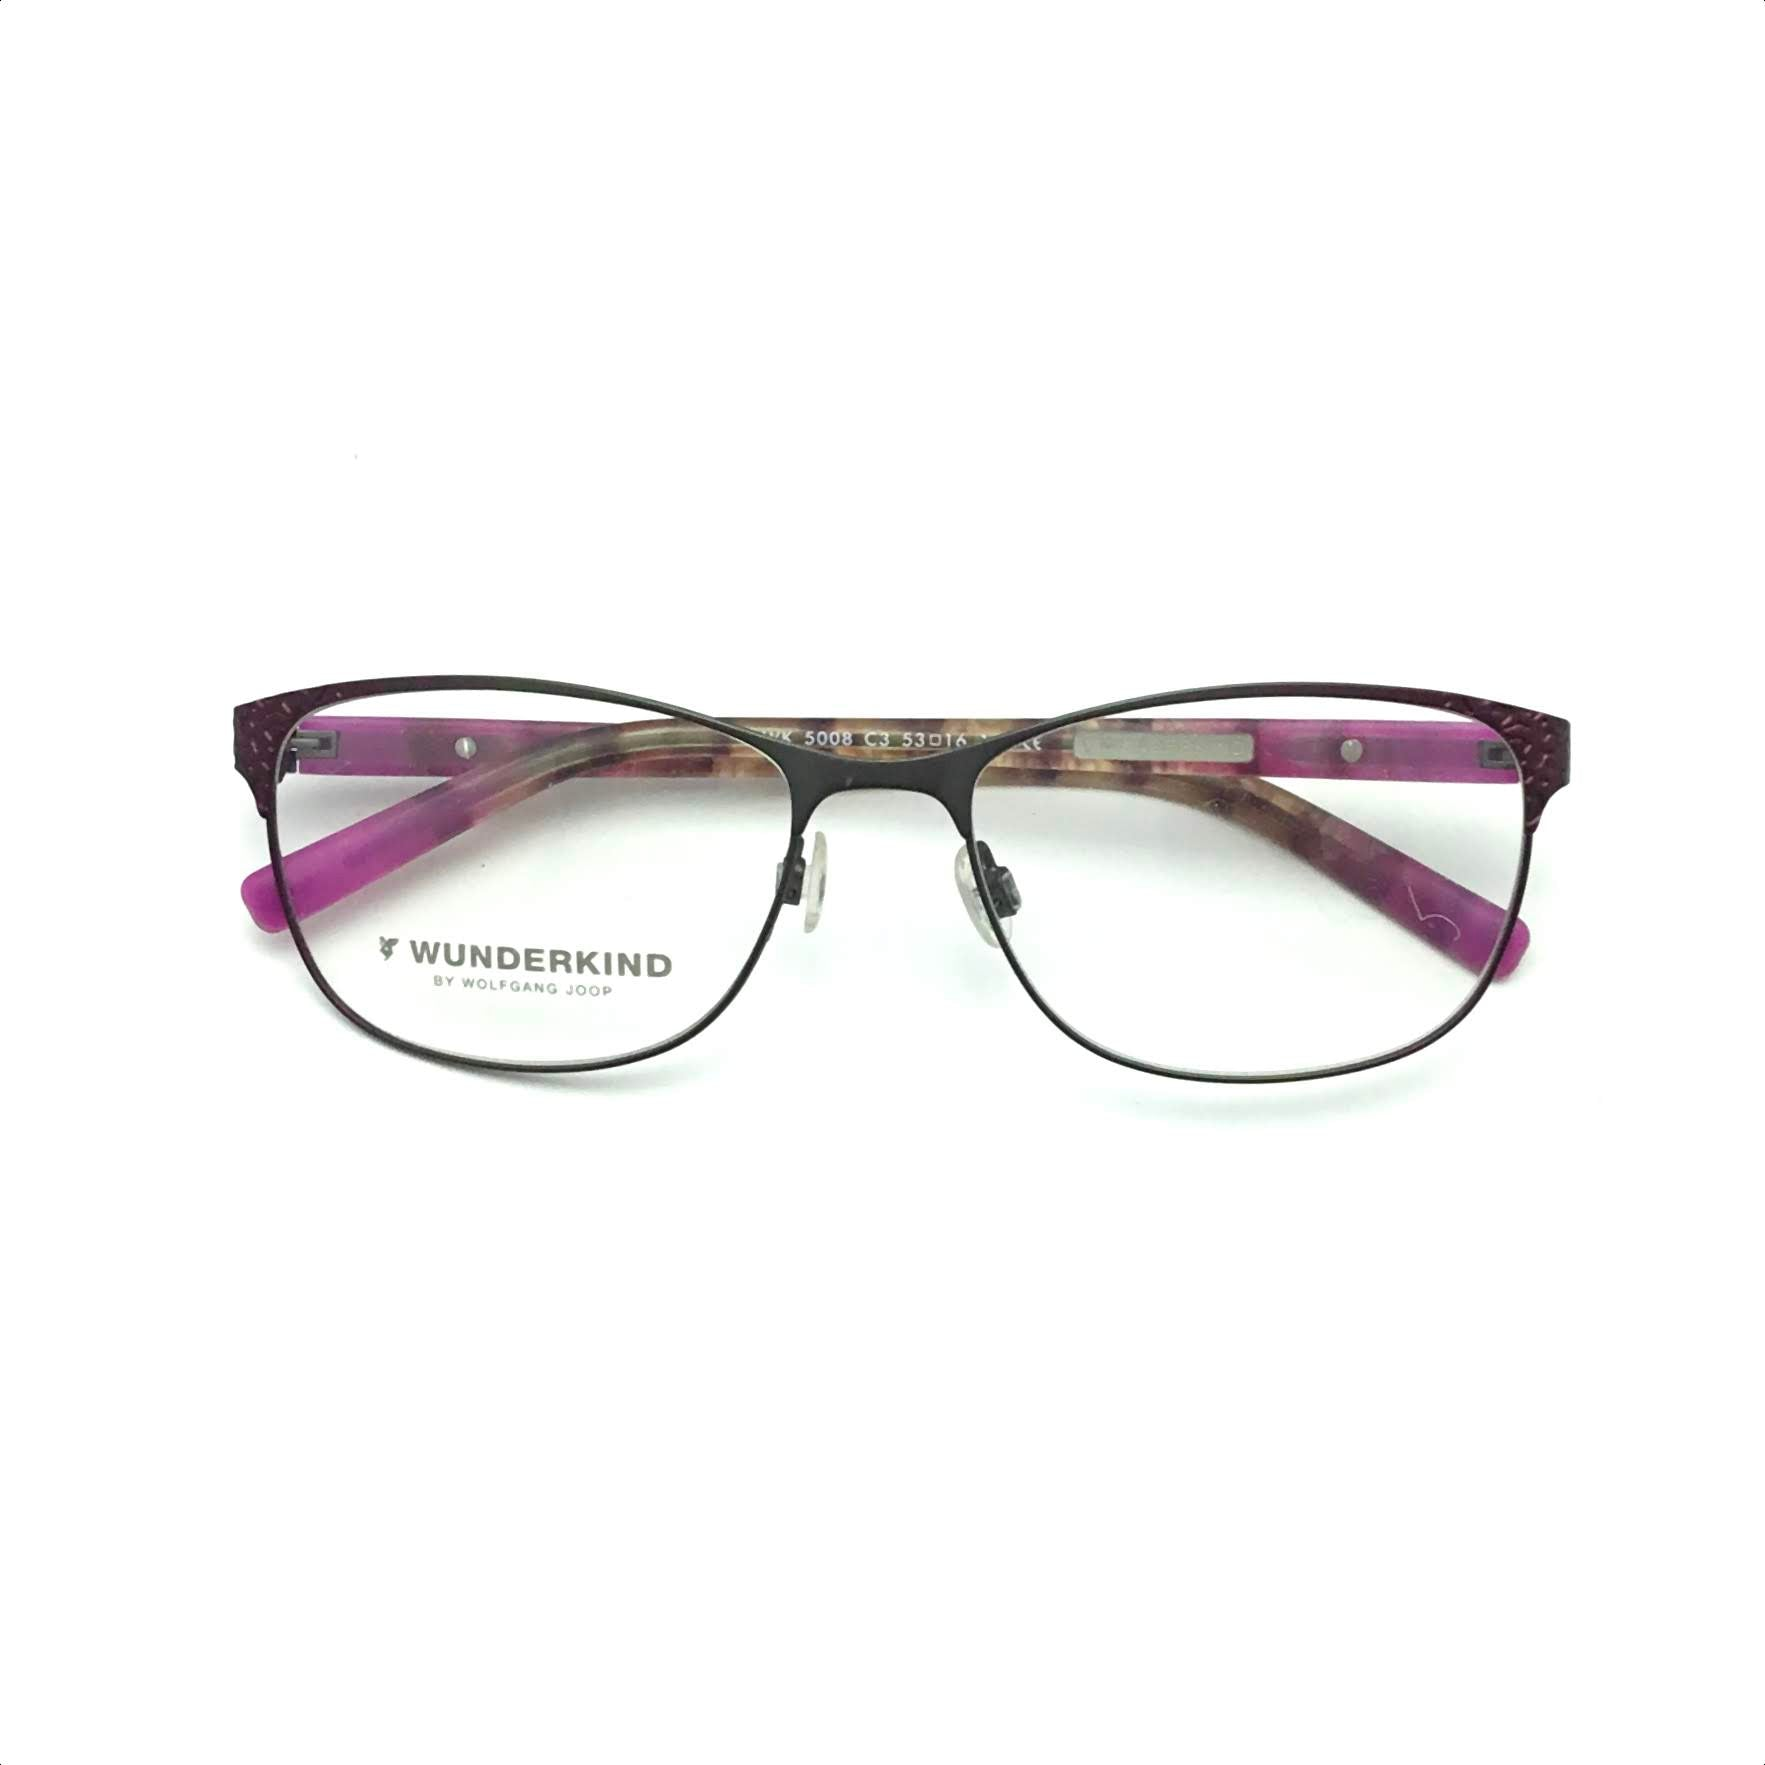 Wunder Kind Glasses $149 GERMANY E14